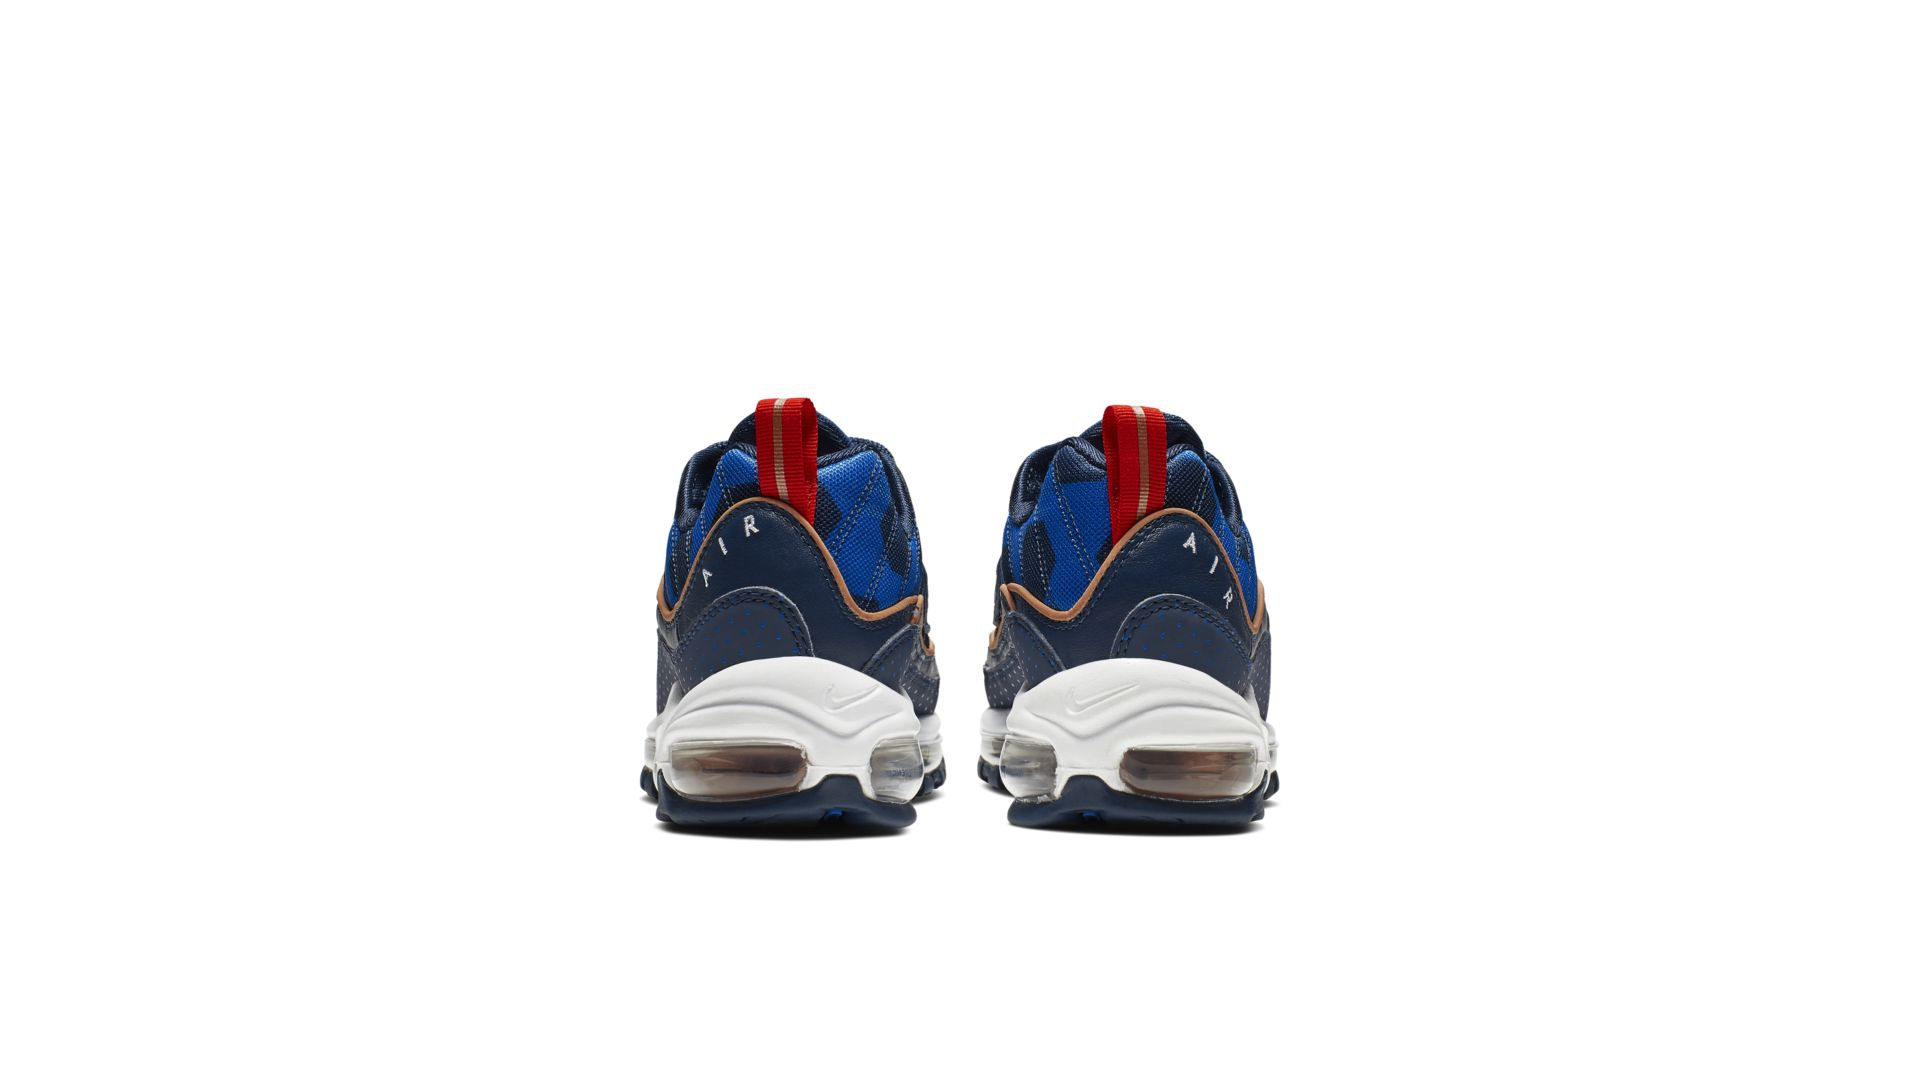 Nike Air Max 98 Premium 'Blue' (CI9105-400)